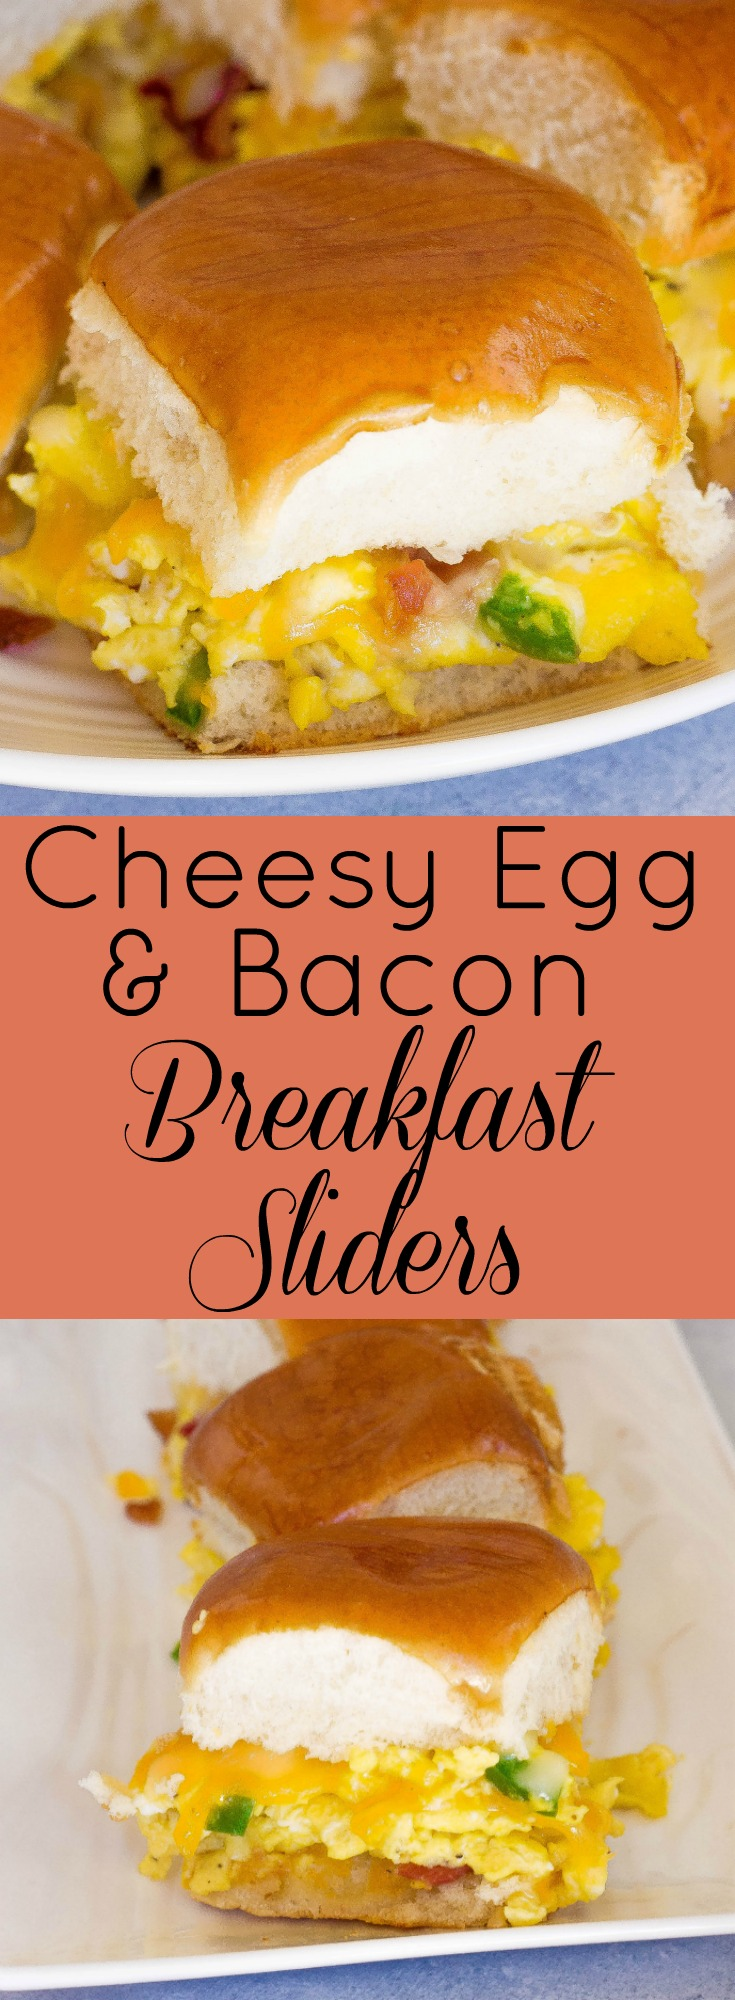 Cheesy Egg & Bacon Breakfast Sliders